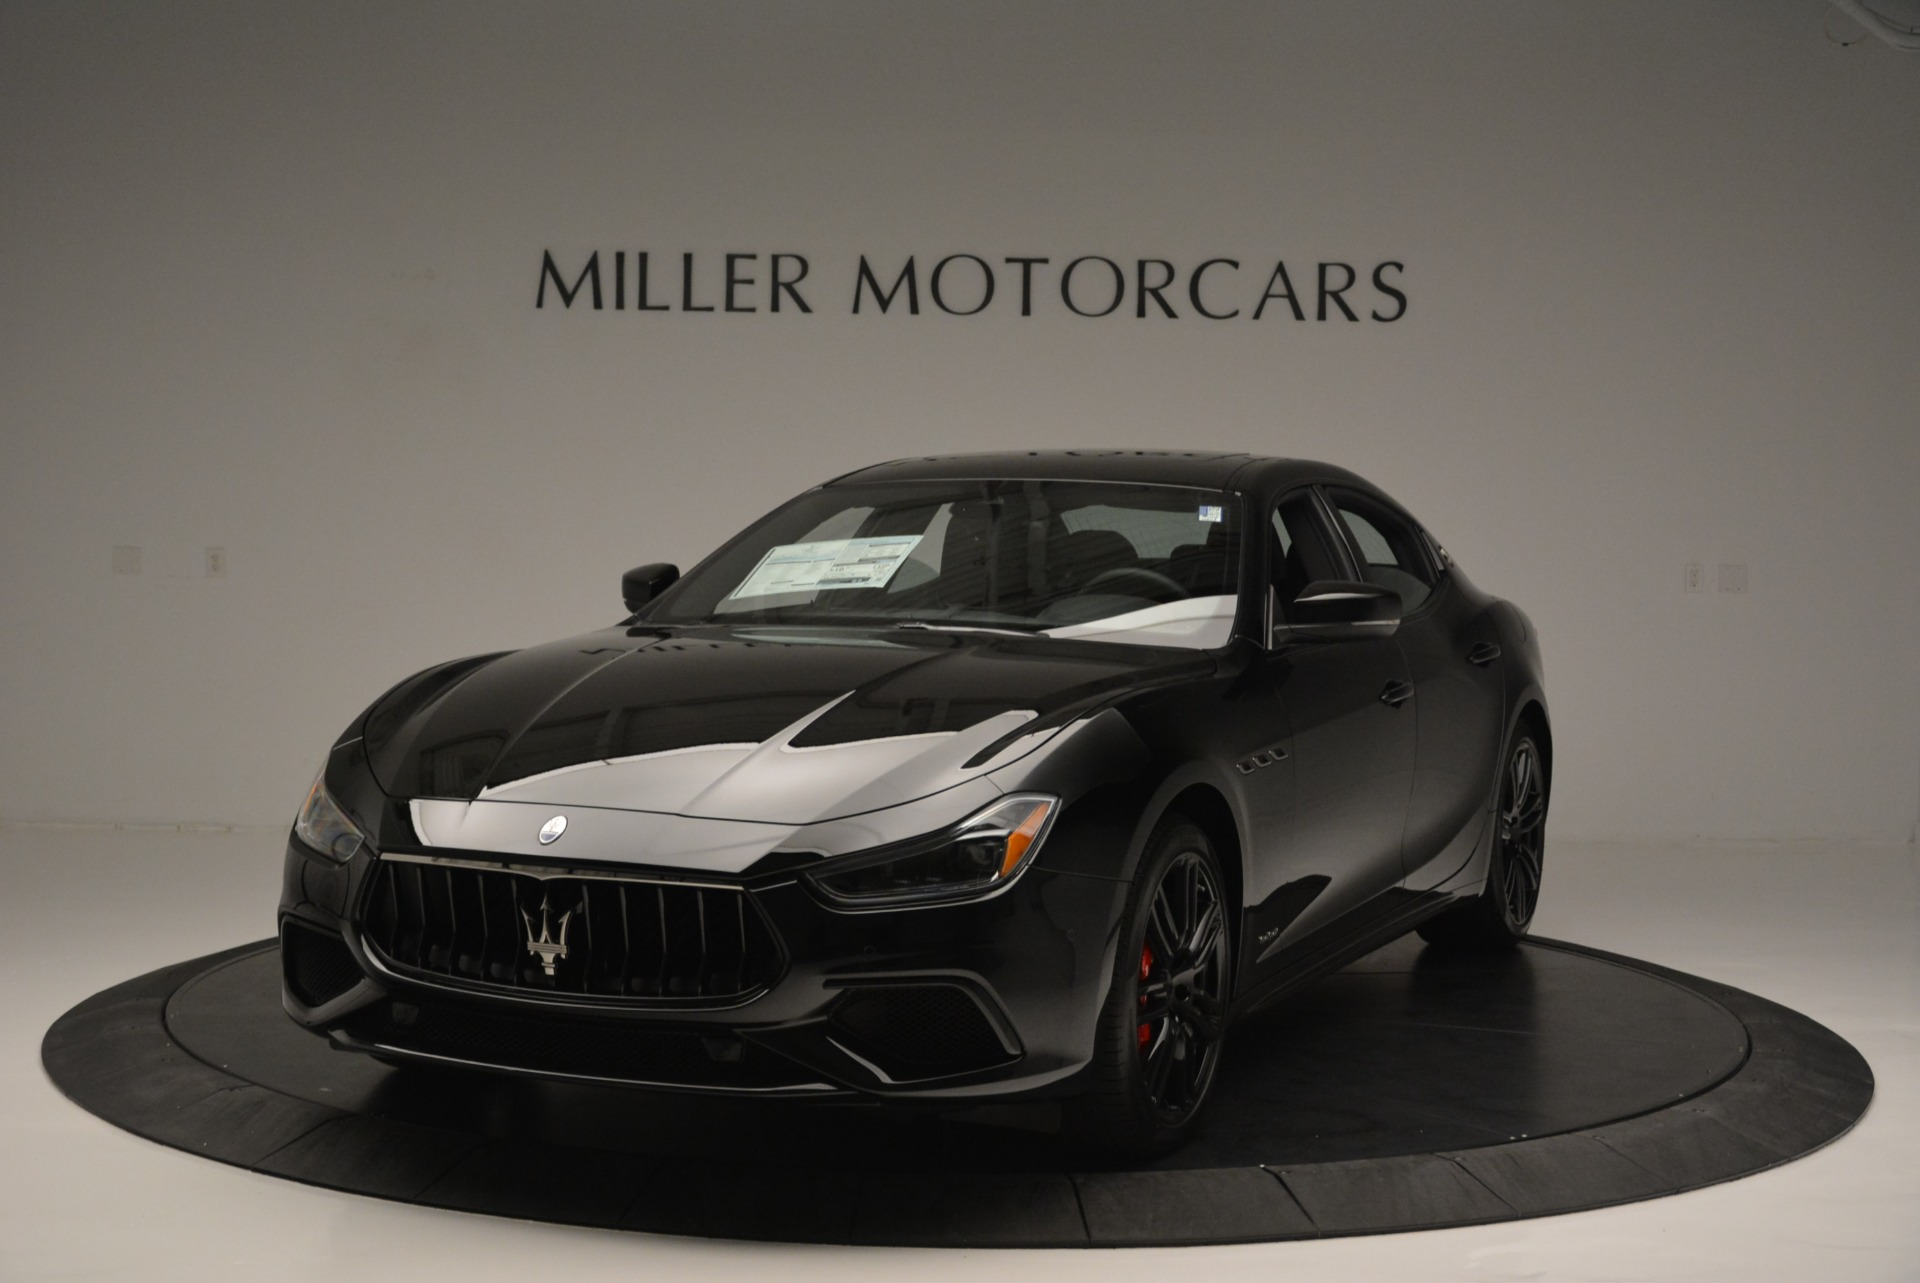 New 2018 Maserati Ghibli SQ4 GranSport Nerissimo For Sale In Greenwich, CT. Alfa Romeo of Greenwich, M2149 2278_main